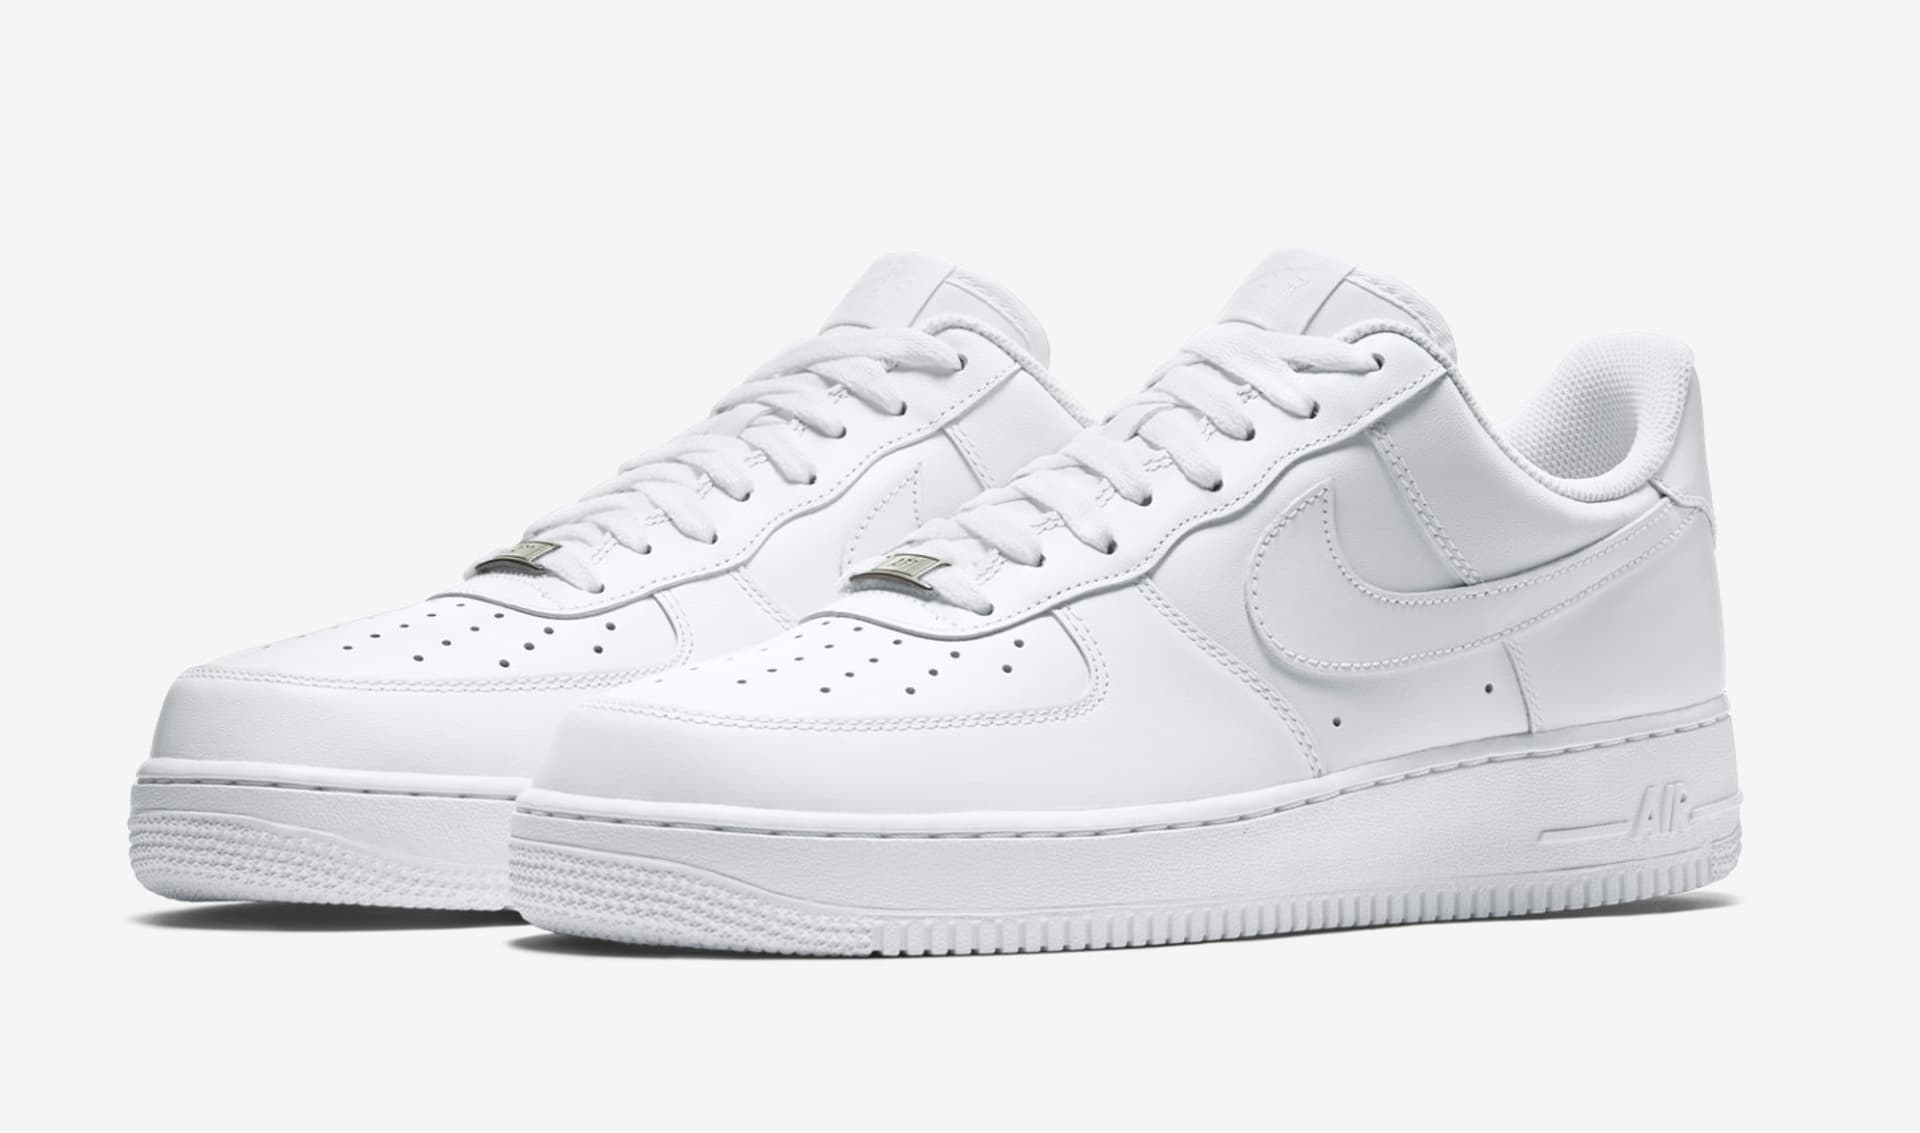 low priced bce30 da482 Nike Air Force 1: History Behind The Perfect White Sneaker ...